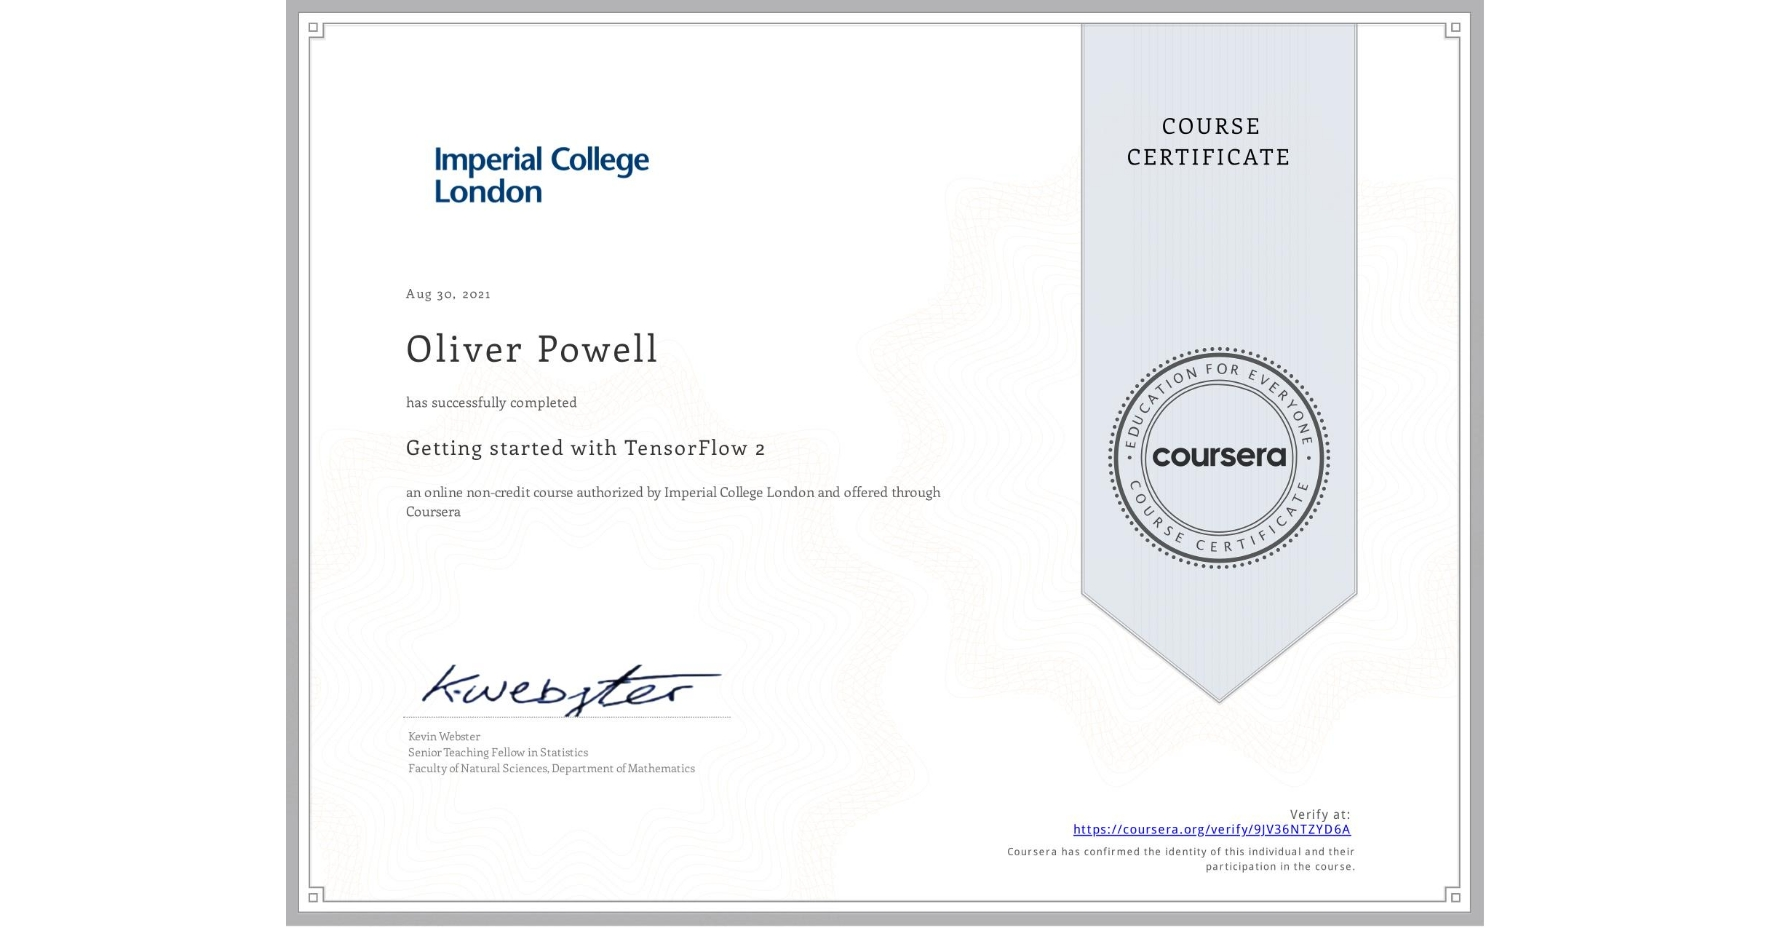 View certificate for Oliver Powell, Getting started with TensorFlow 2, an online non-credit course authorized by Imperial College London and offered through Coursera